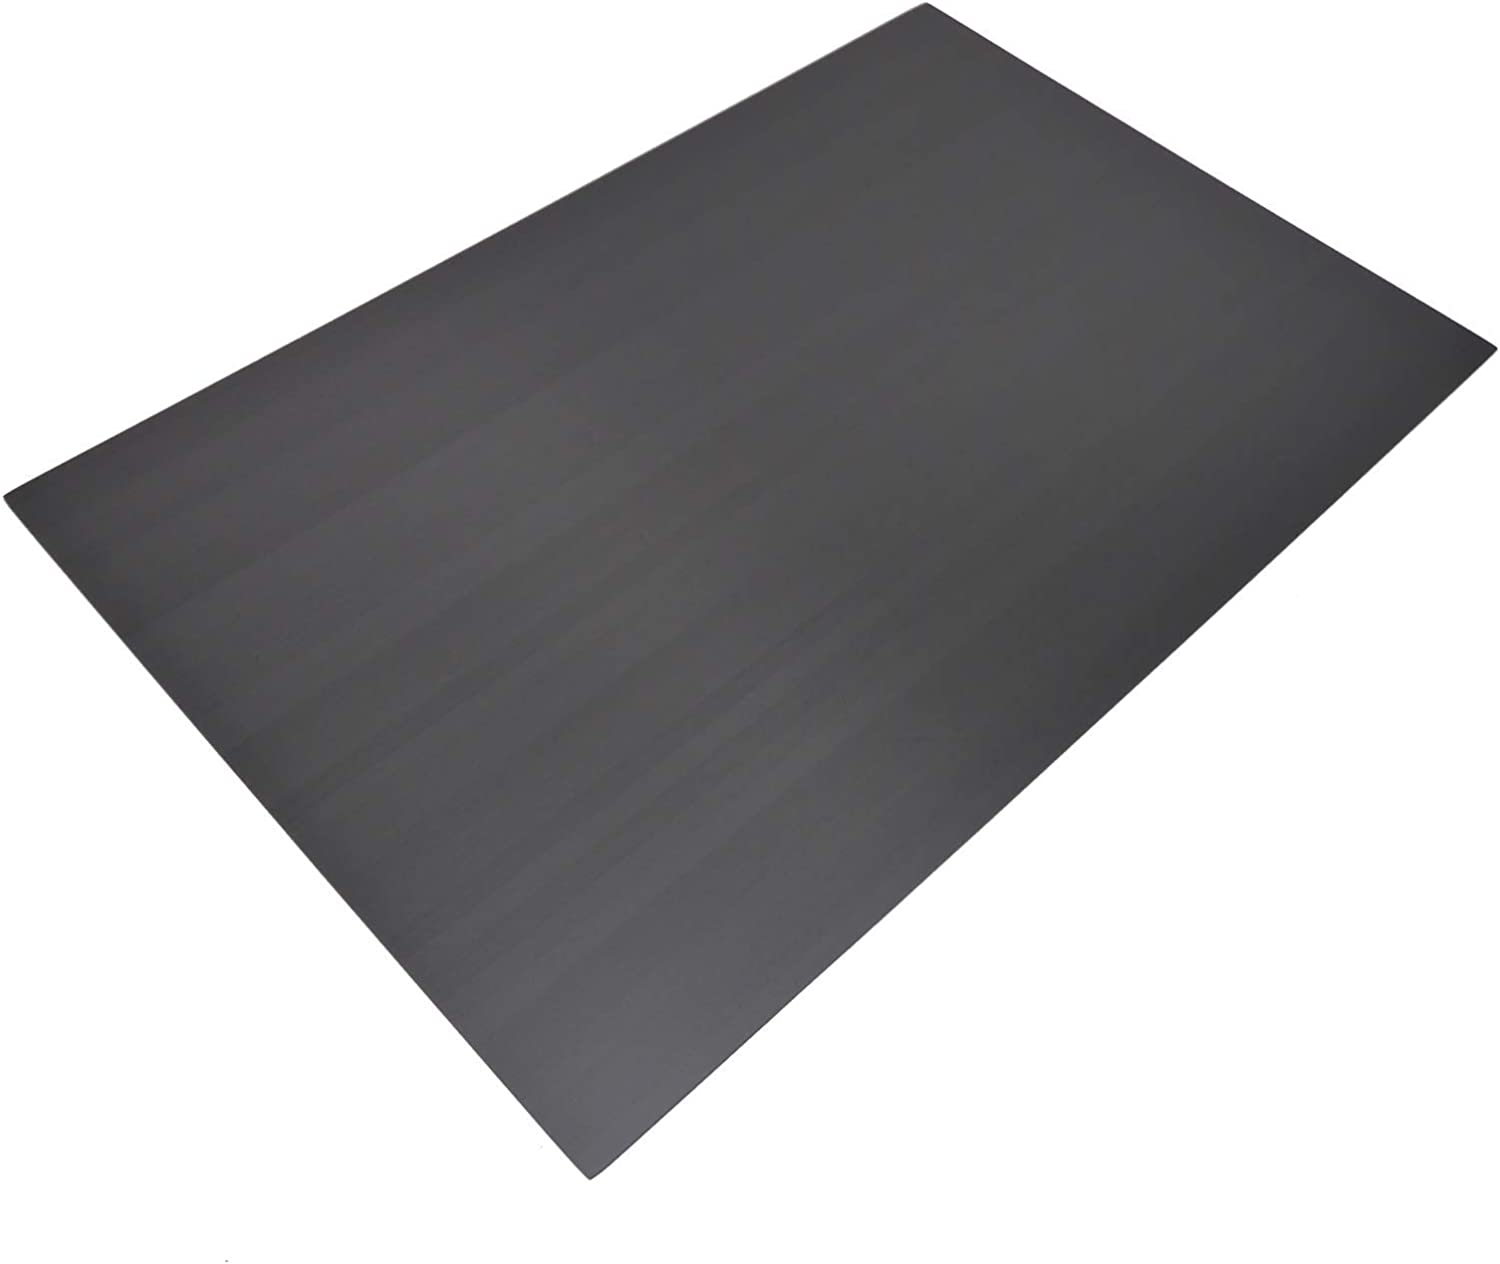 300x200x0.5MM Unidirectional Carbon Fiber Max 60% OFF Composite Panel Sheet Direct stock discount